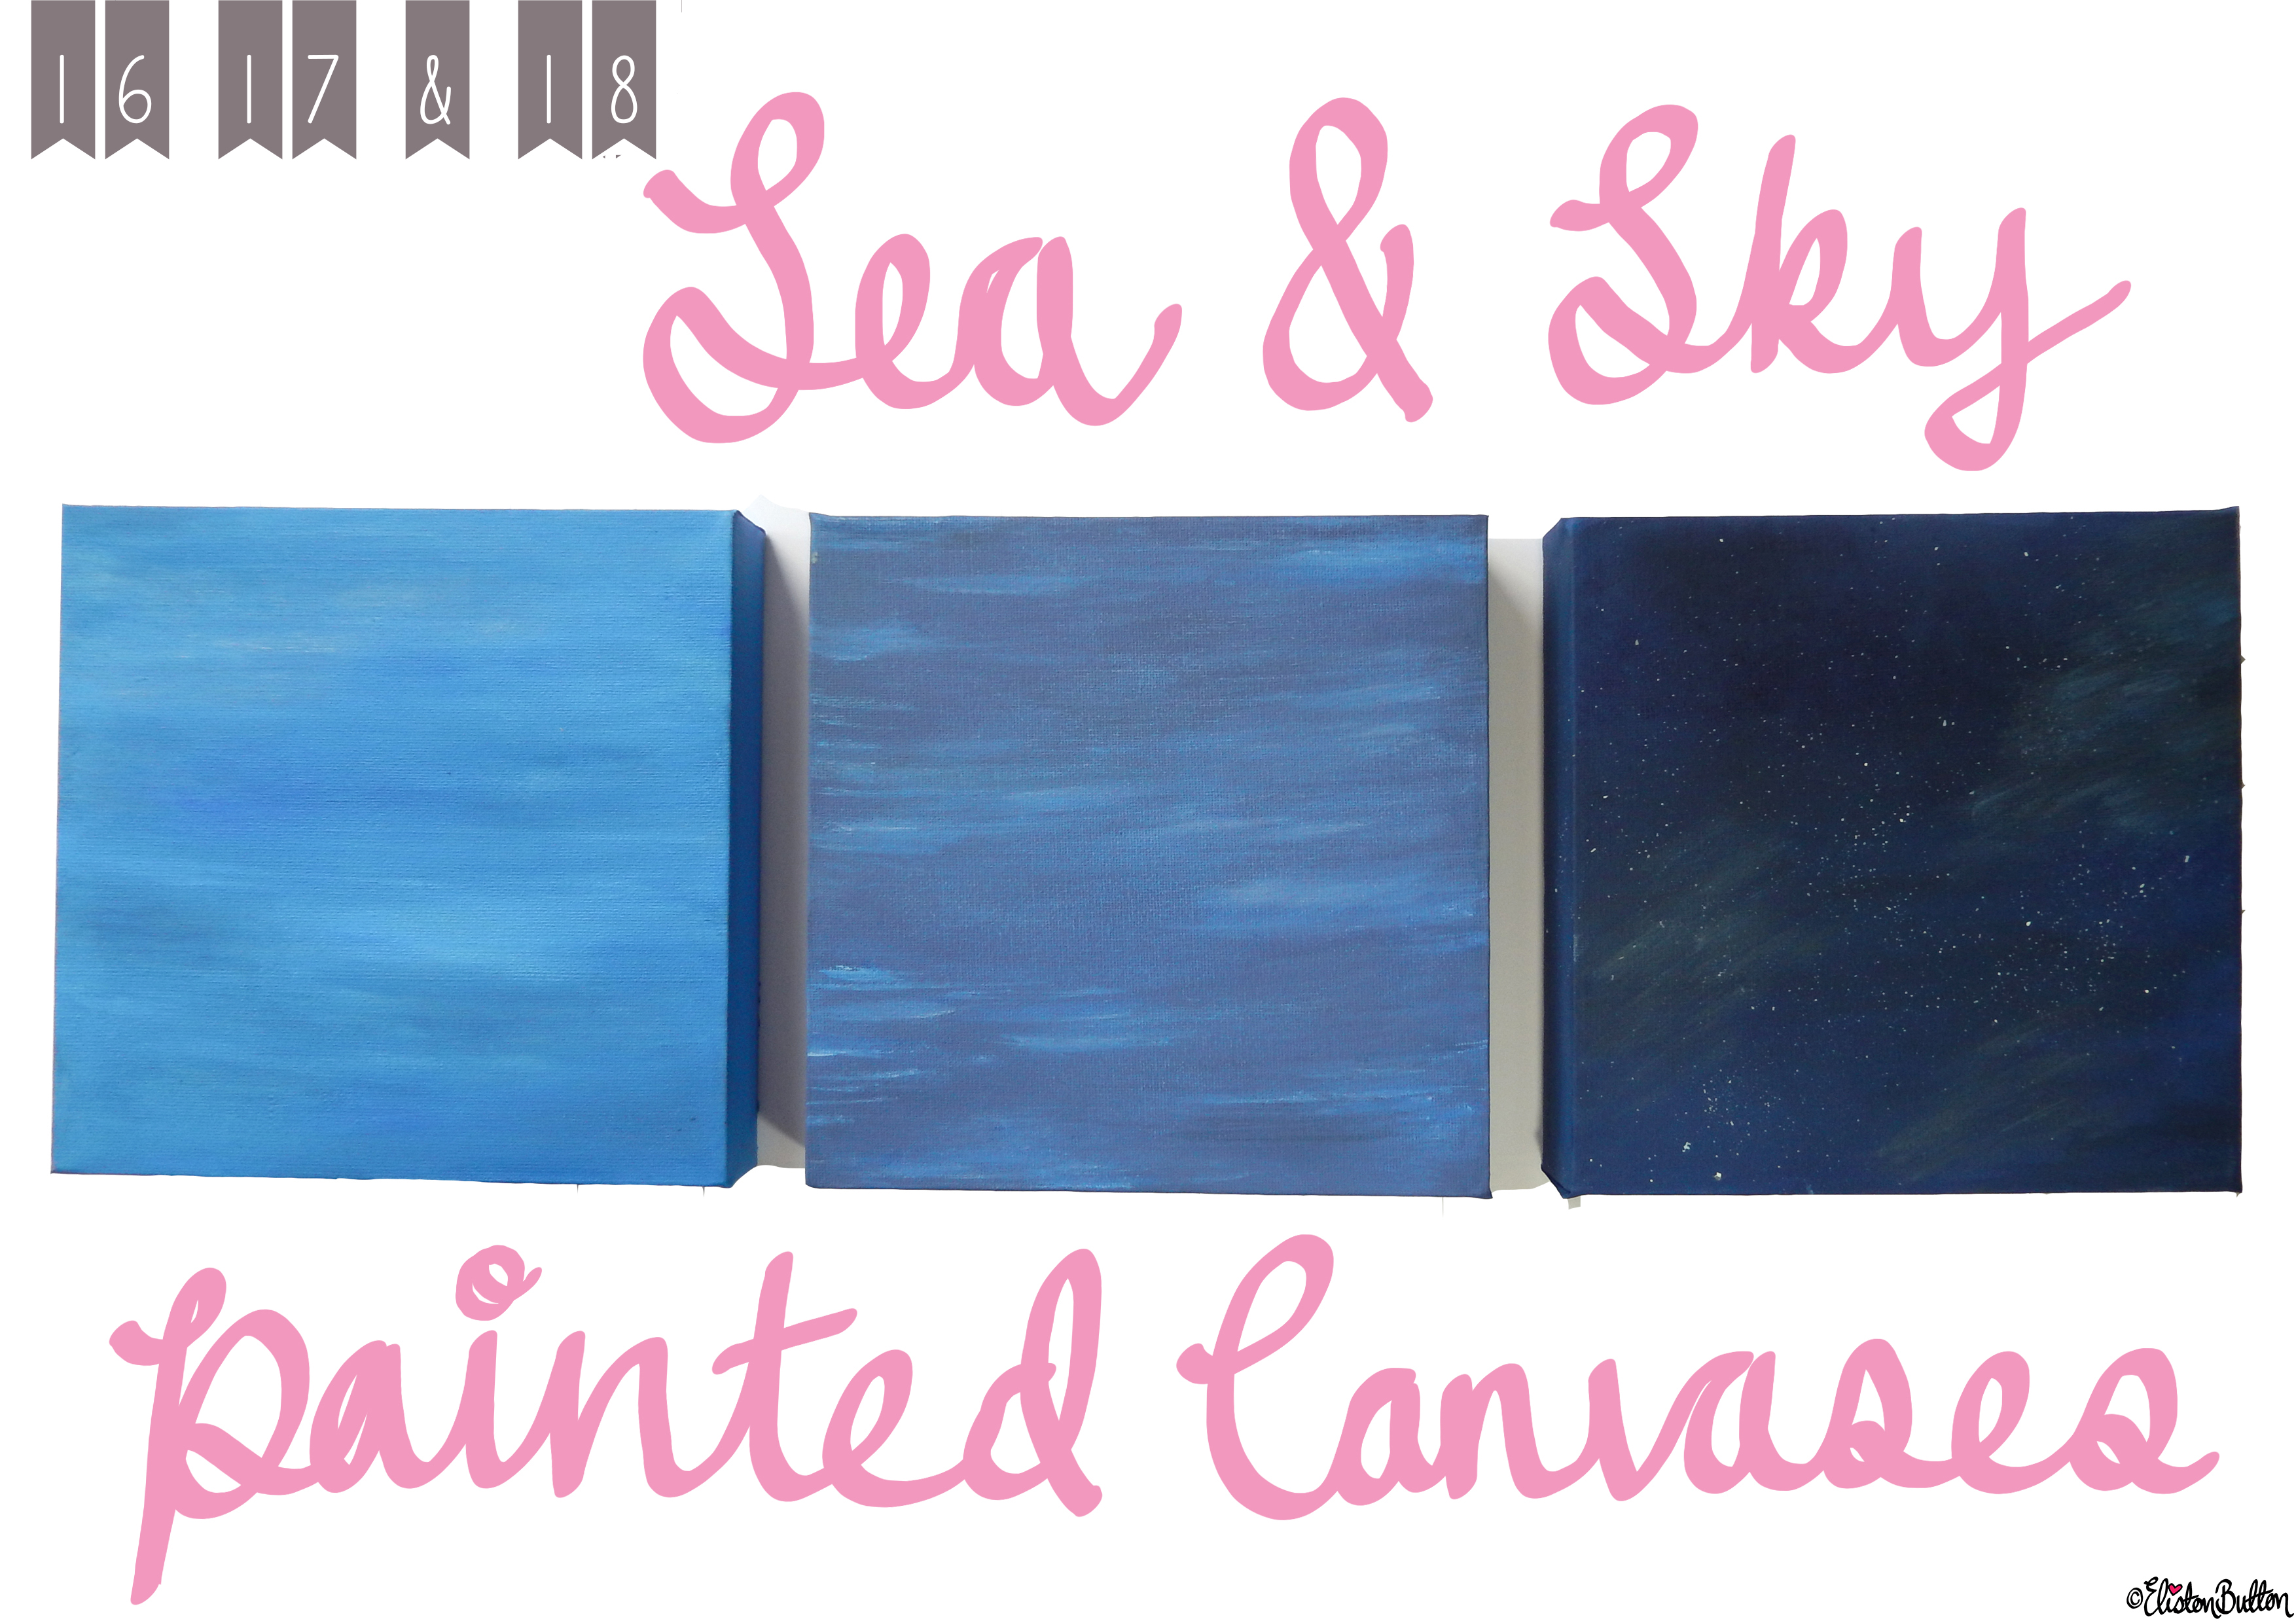 Sky and Water Painted Canvases Title Banner 1 - Create 28 - No. 16, 17 & 18 - Sea and Sky Painted Canvases at www.elistonbutton.com - Eliston Button - That Crafty Kid – Art, Design, Craft & Adventure.